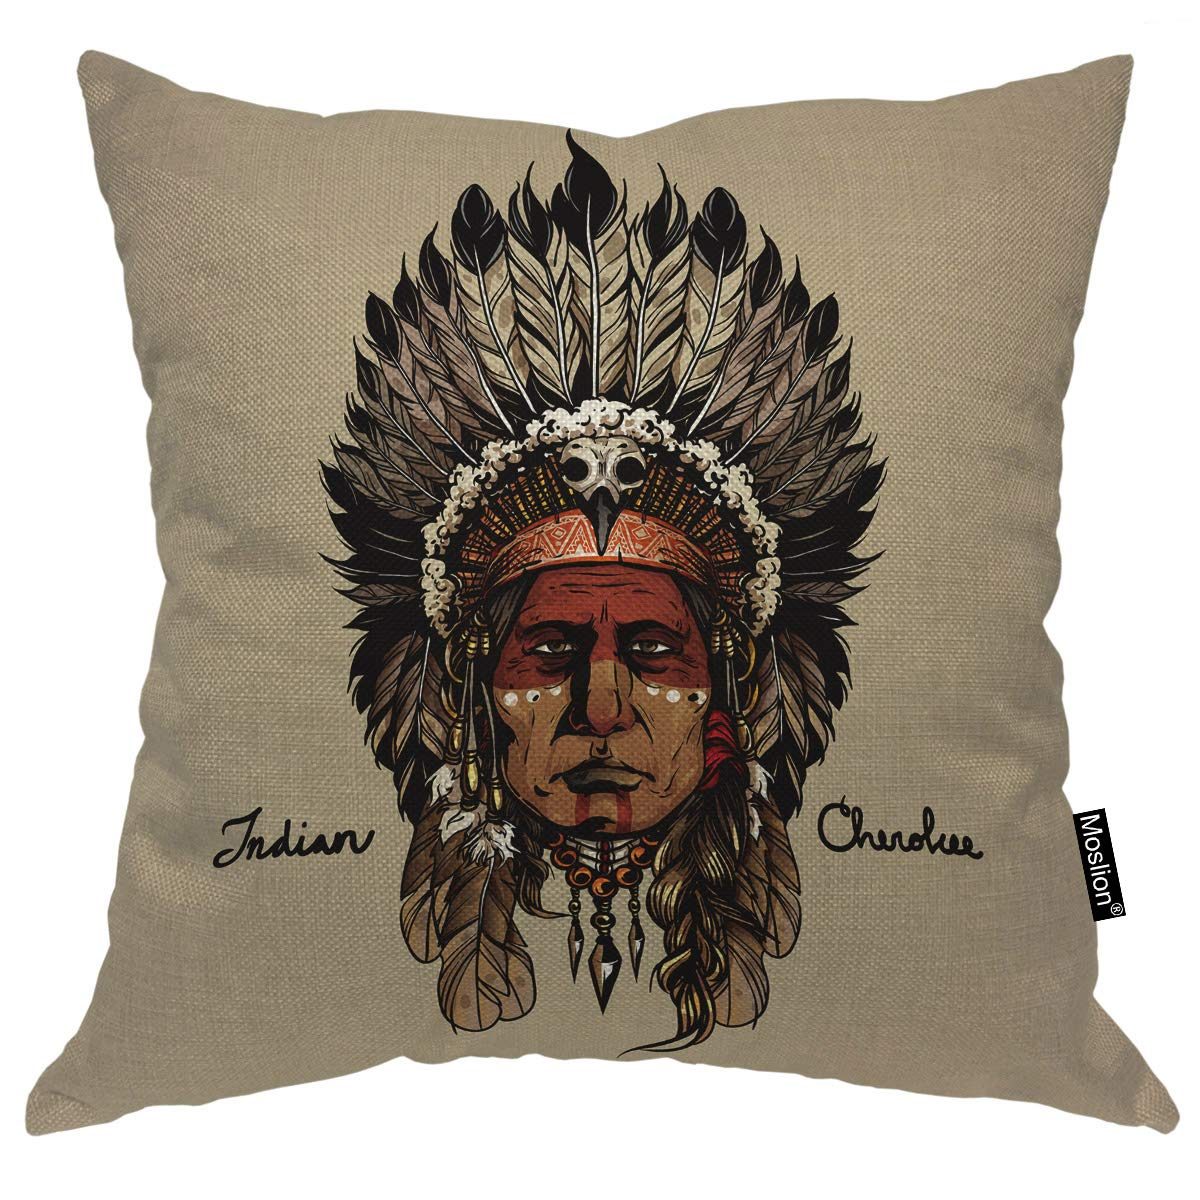 Moslion Indian Cherokee Throw Pillow Cover Warrior Native American Art Culture Chief Hand Drawing Head 20x20 Inch Square Pillow Case Cushion Cover for Home Car Decorative Cotton Linen